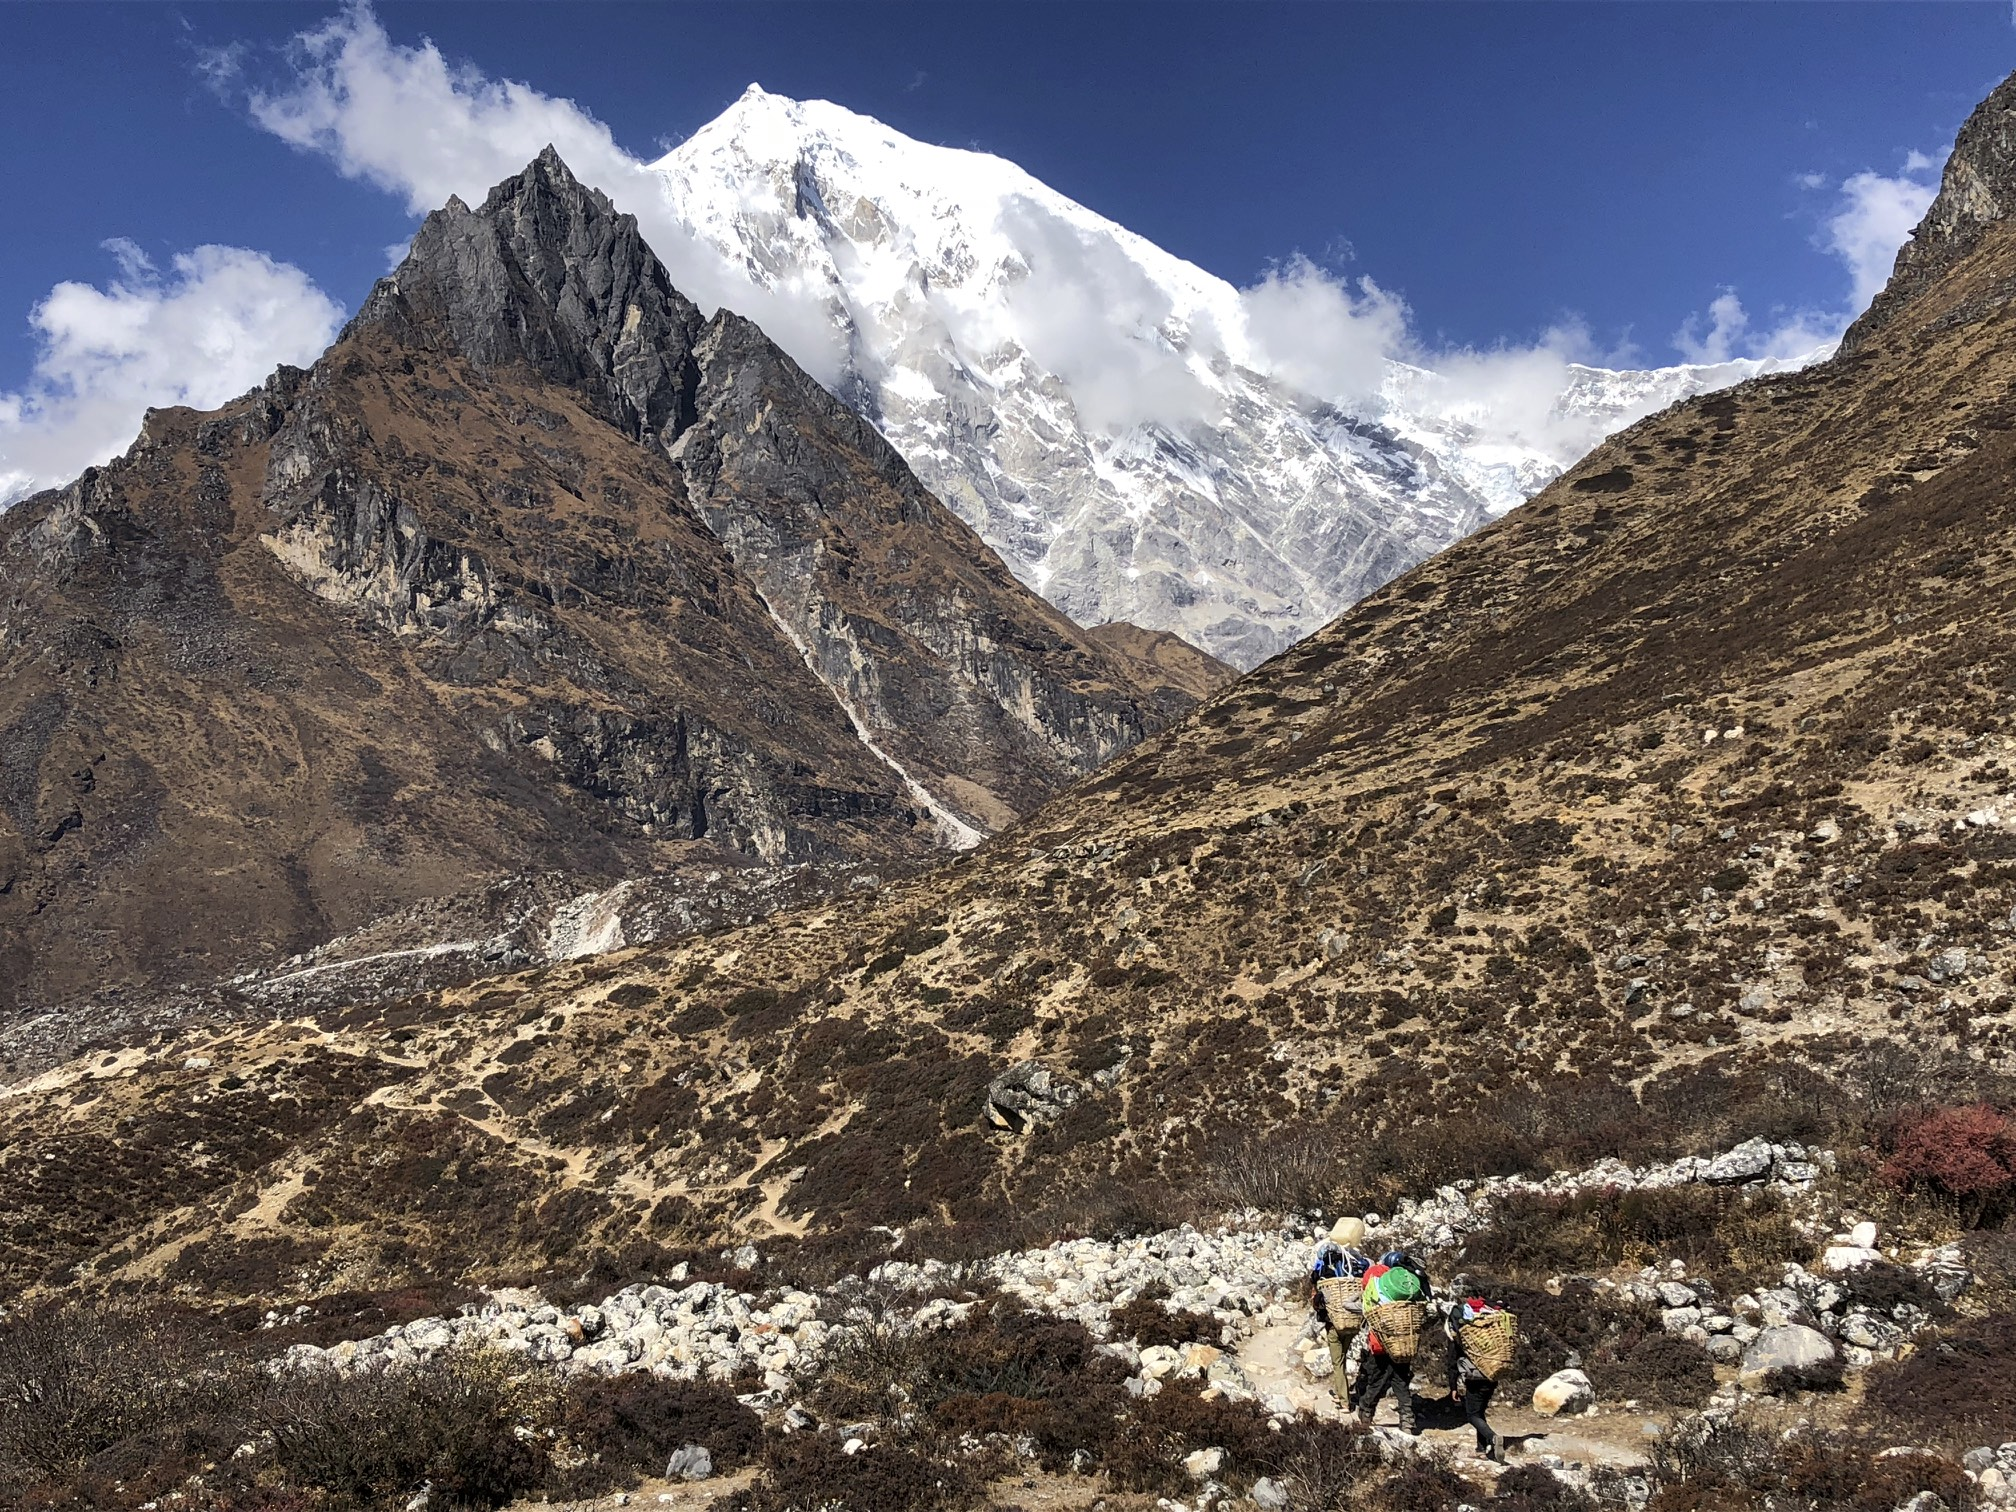 Approaching Kinjang Gompa with Langtang Lirung looming above